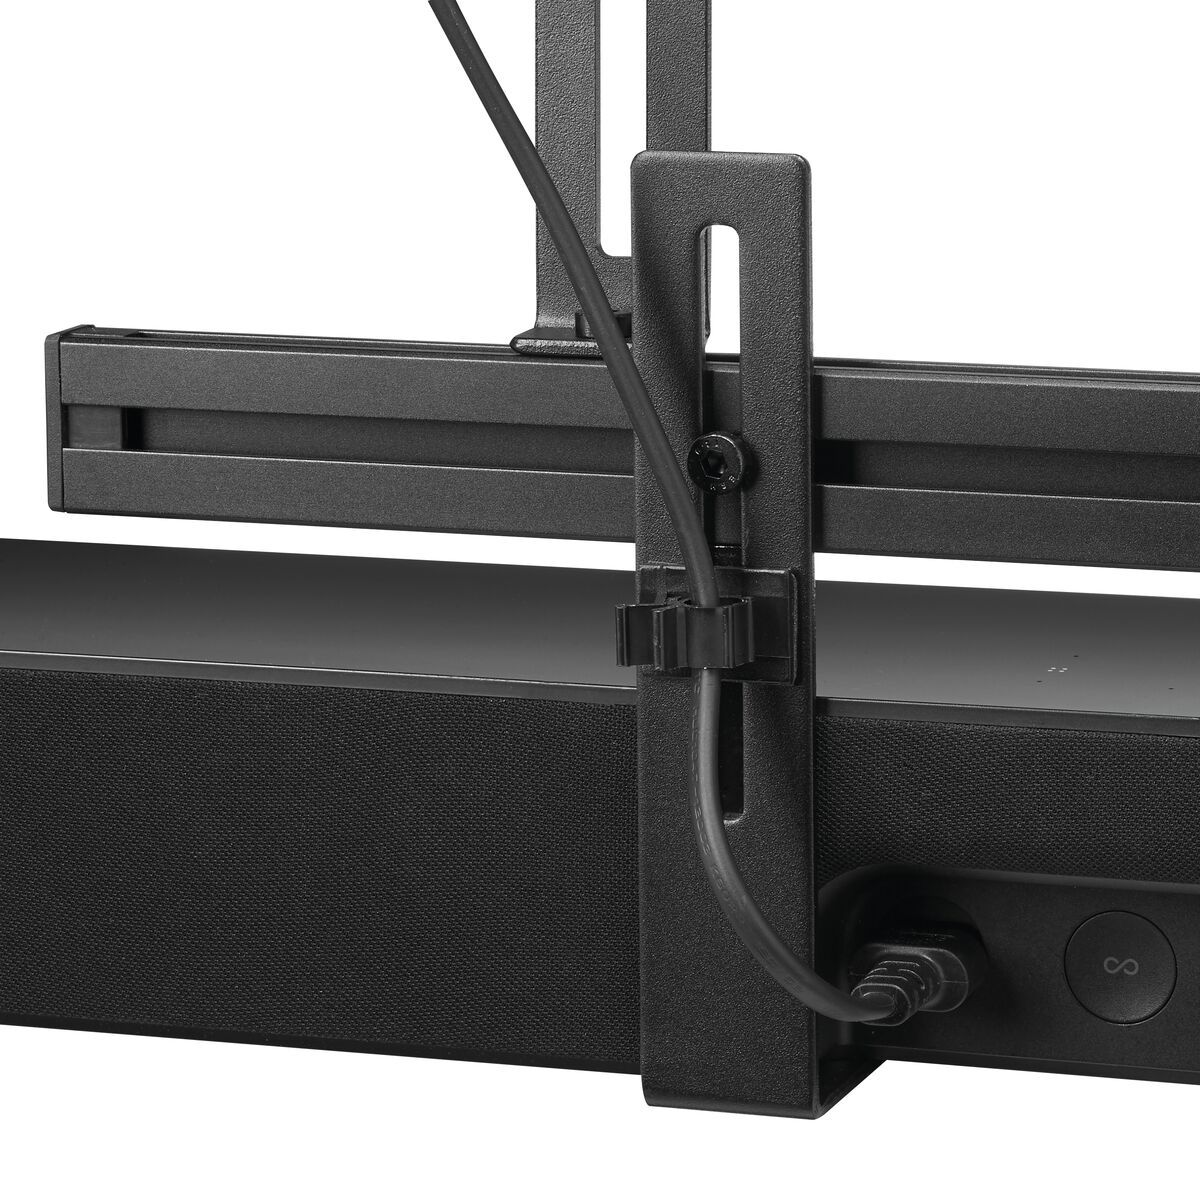 Vogel's SOUND 3550 Sound Bar Mount - Detail